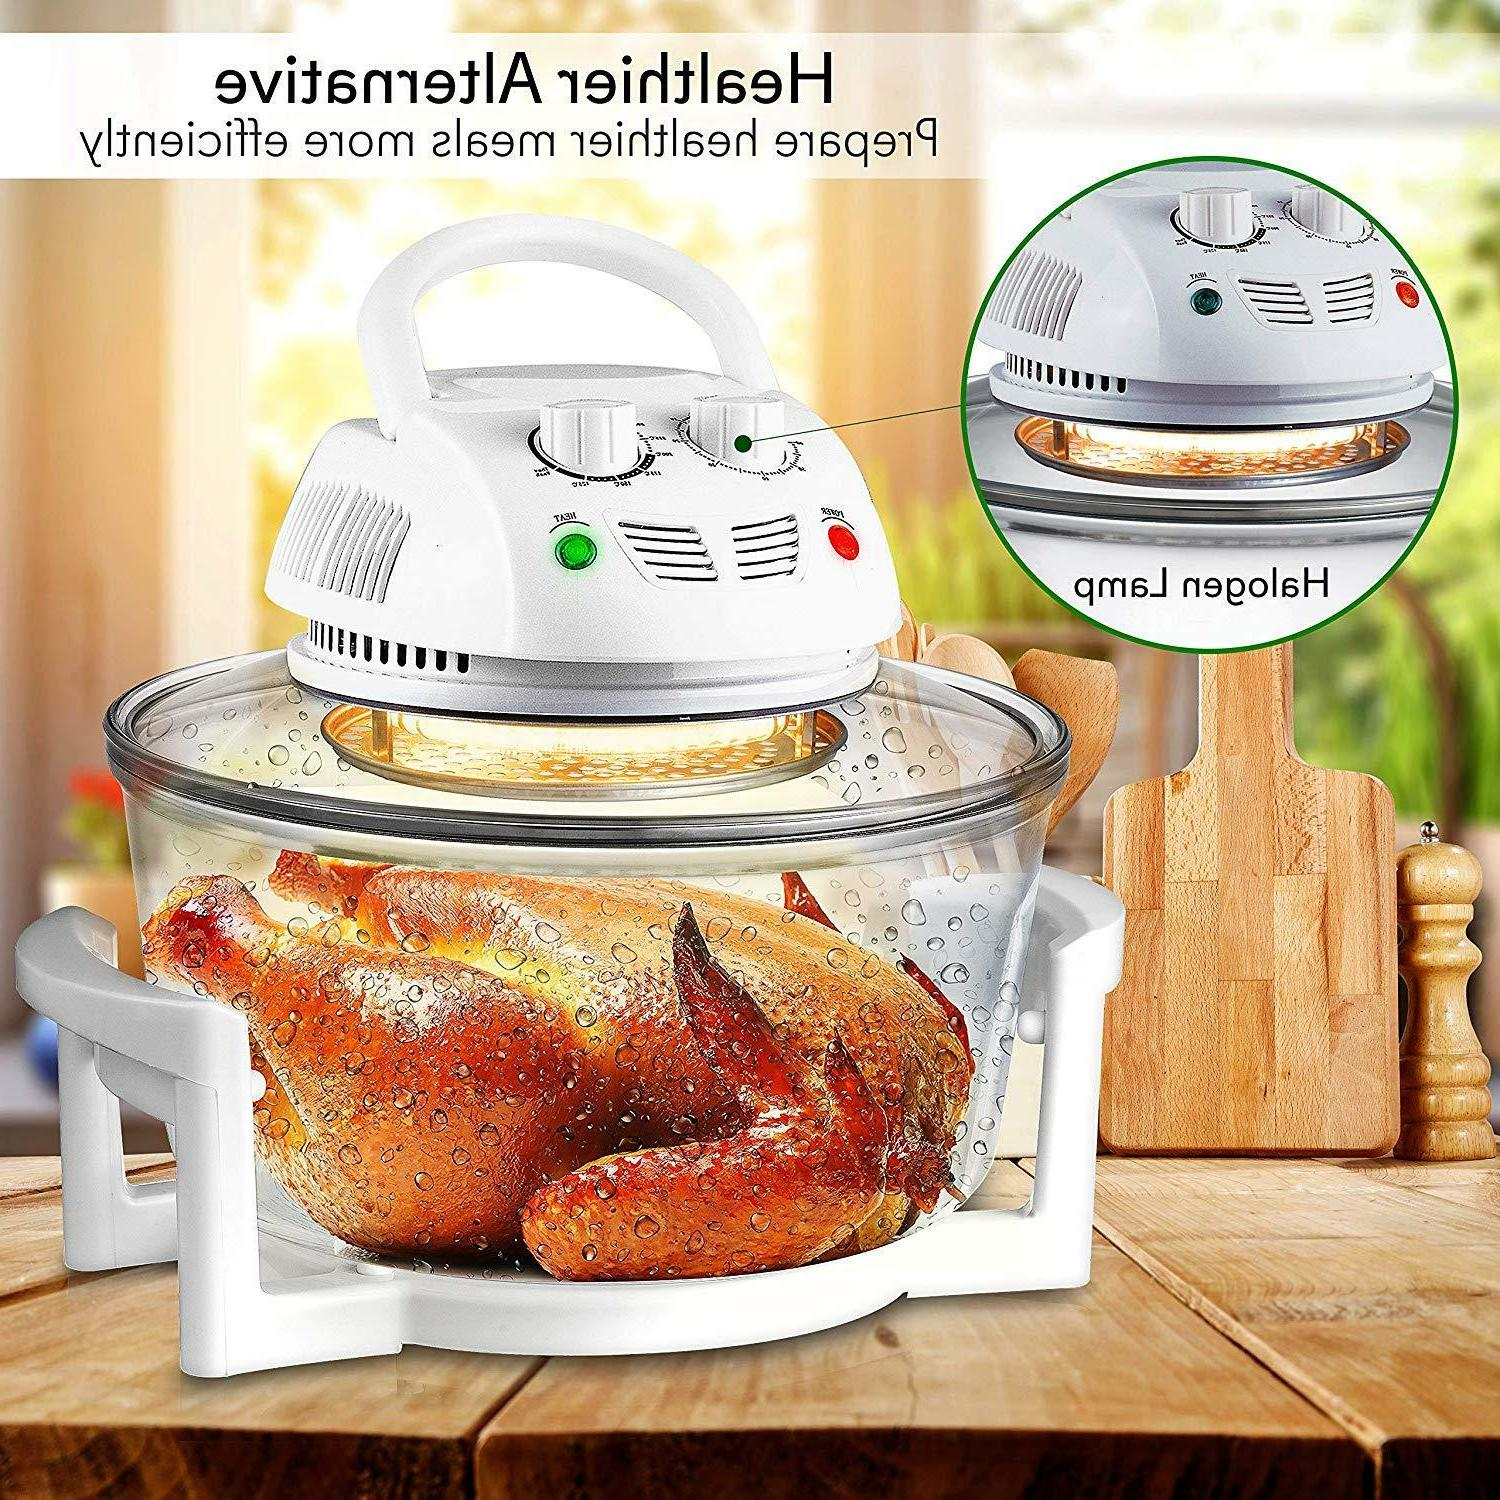 NutriChef Air Fryer Convection Healthy